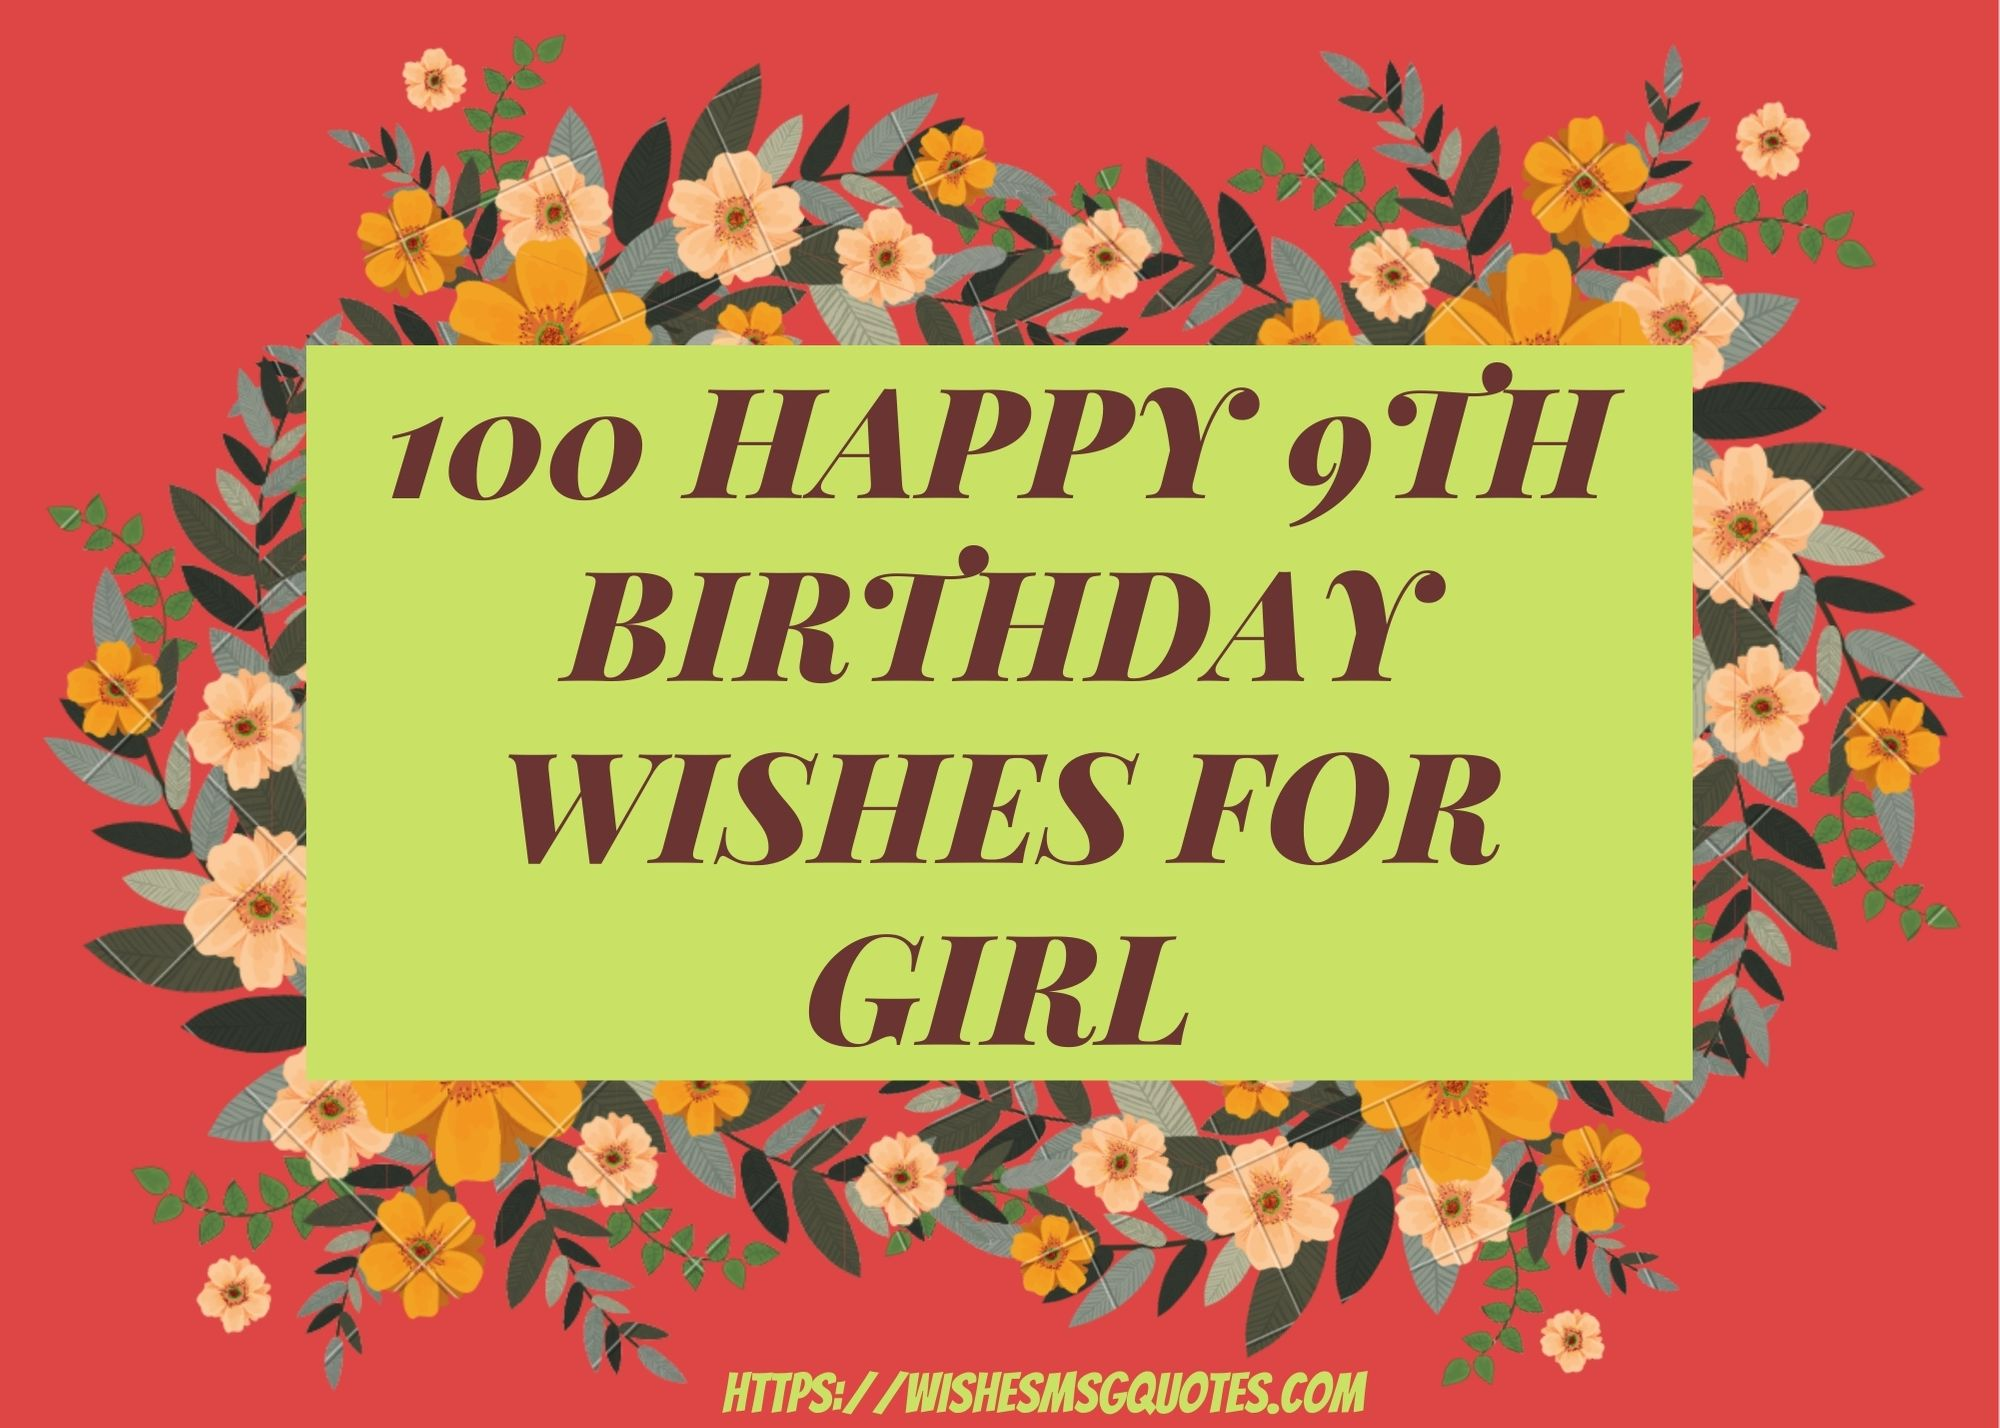 100 Happy 9th Birthday Wishes For Girl